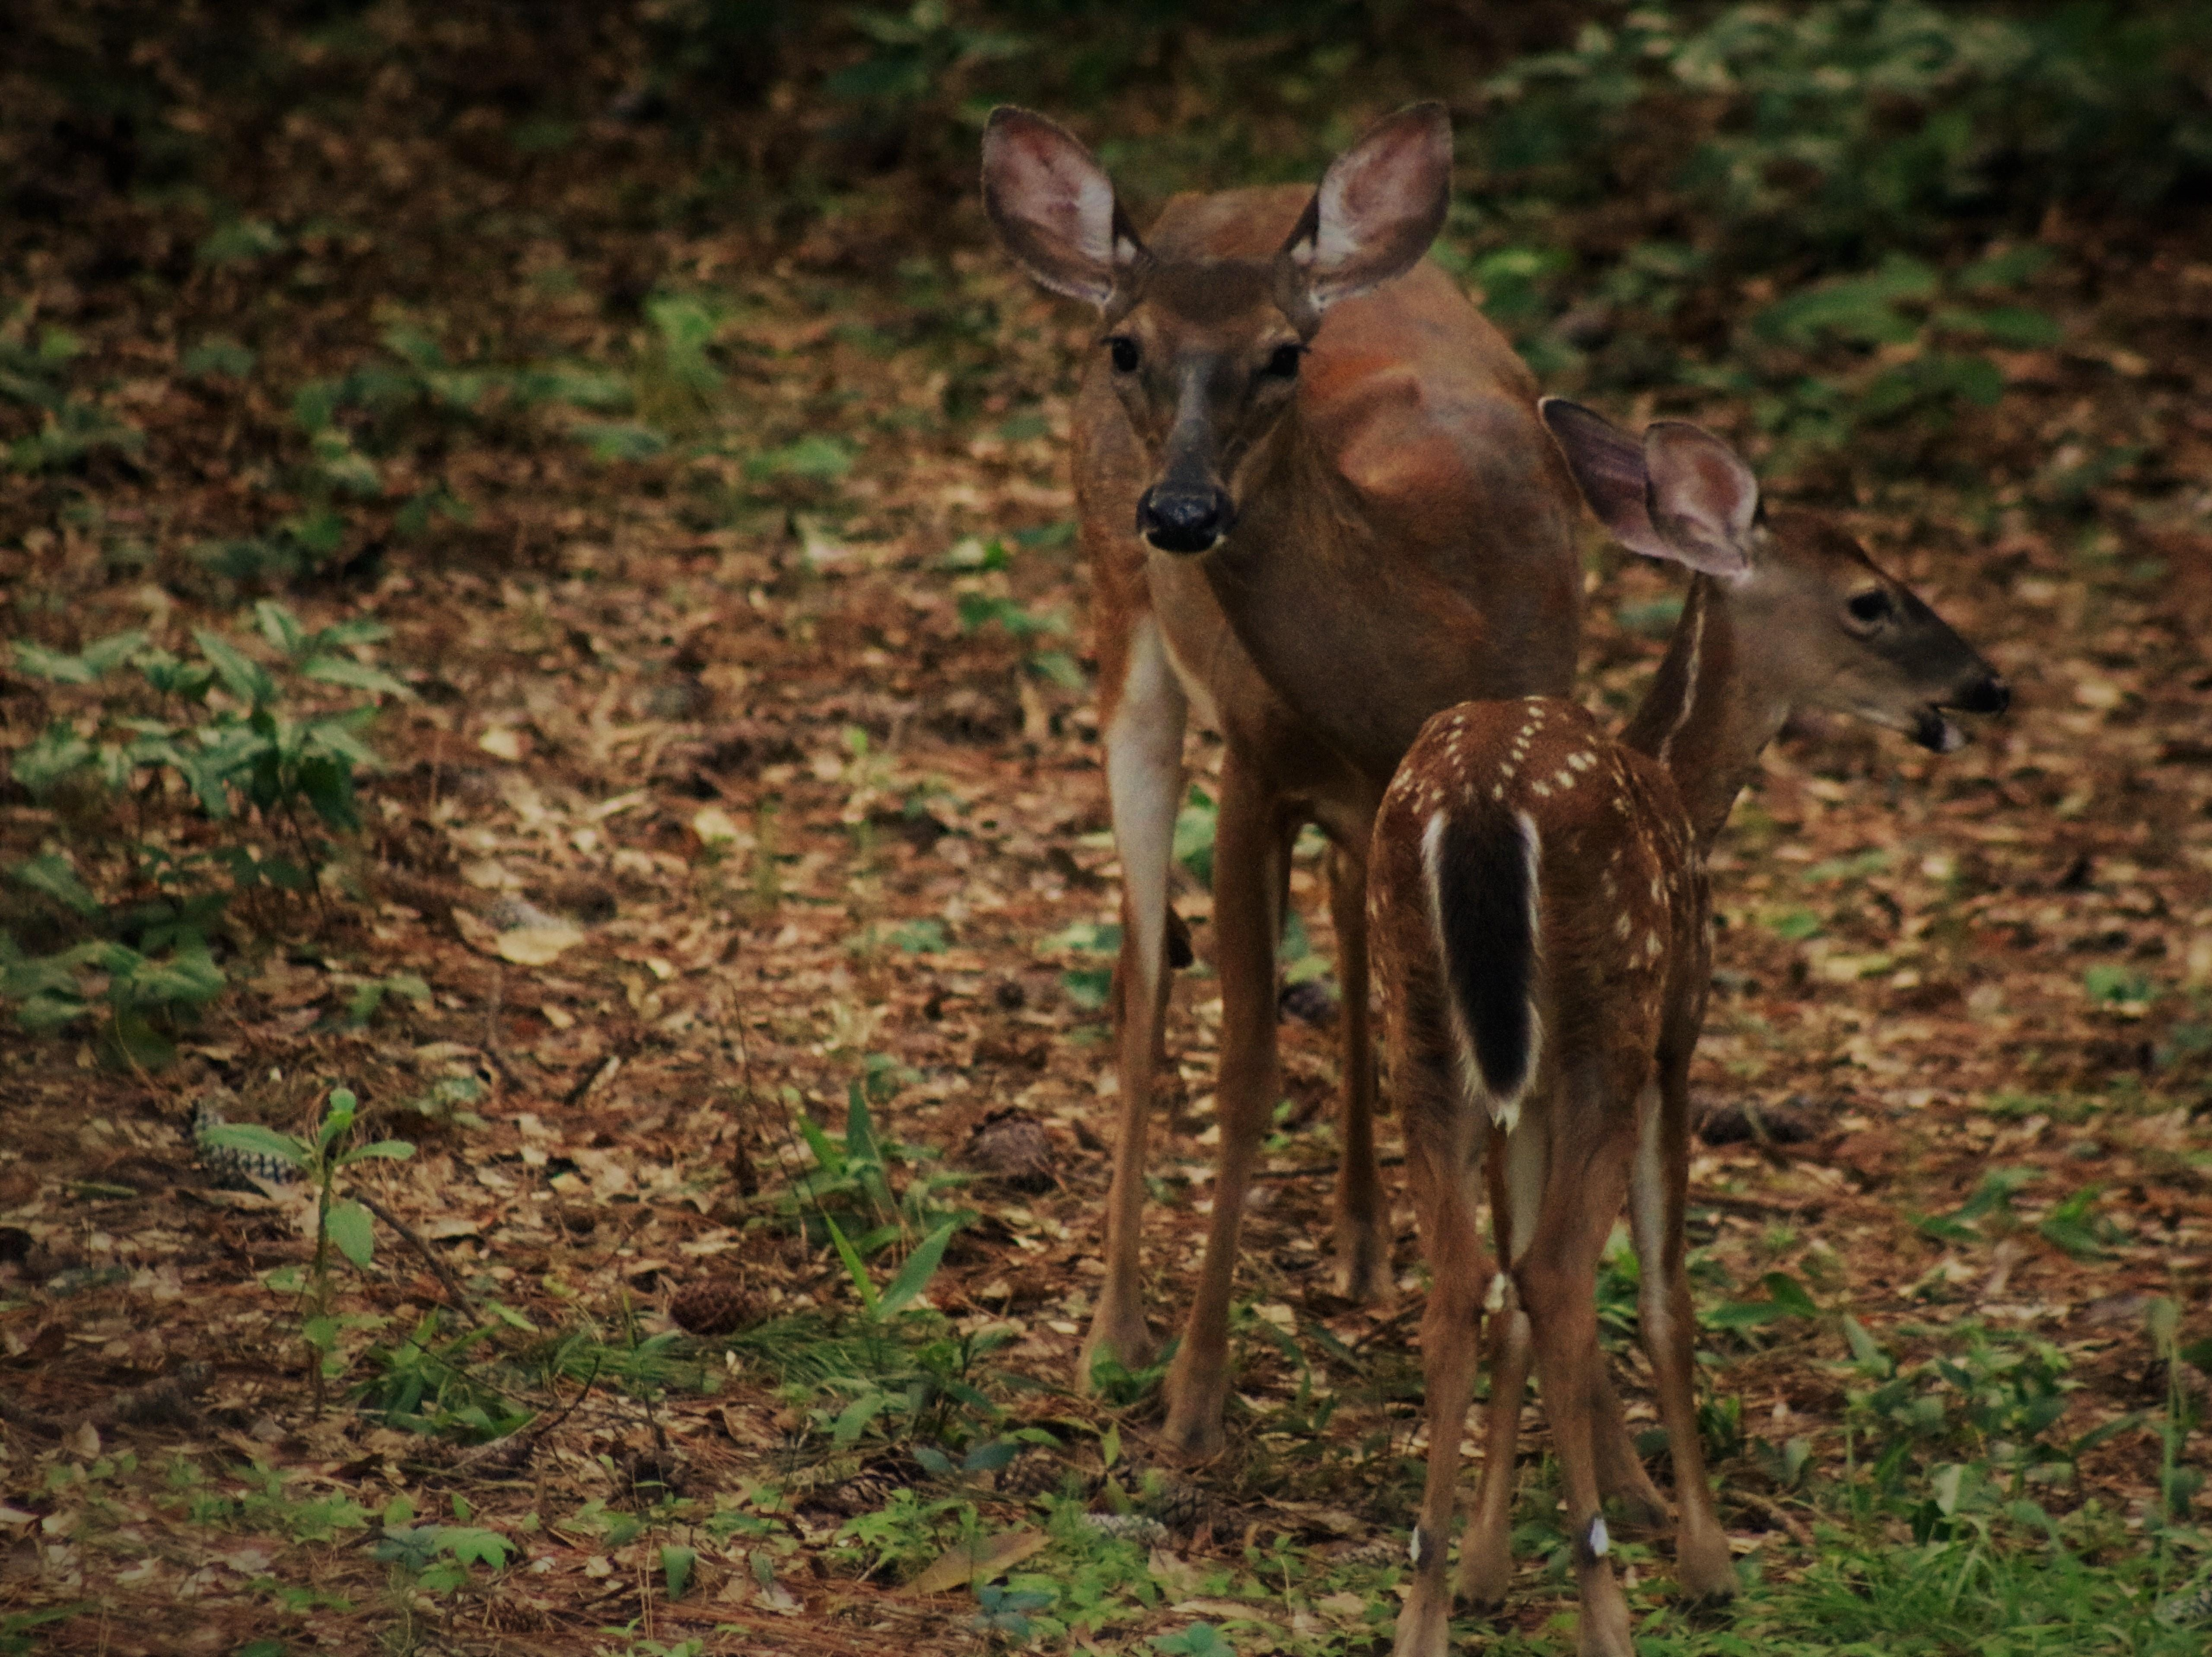 Every day for the past few weeks we have had a mama deer and her baby visit our backyard.  They have been here so much they don't even run when I come out to photograph them.